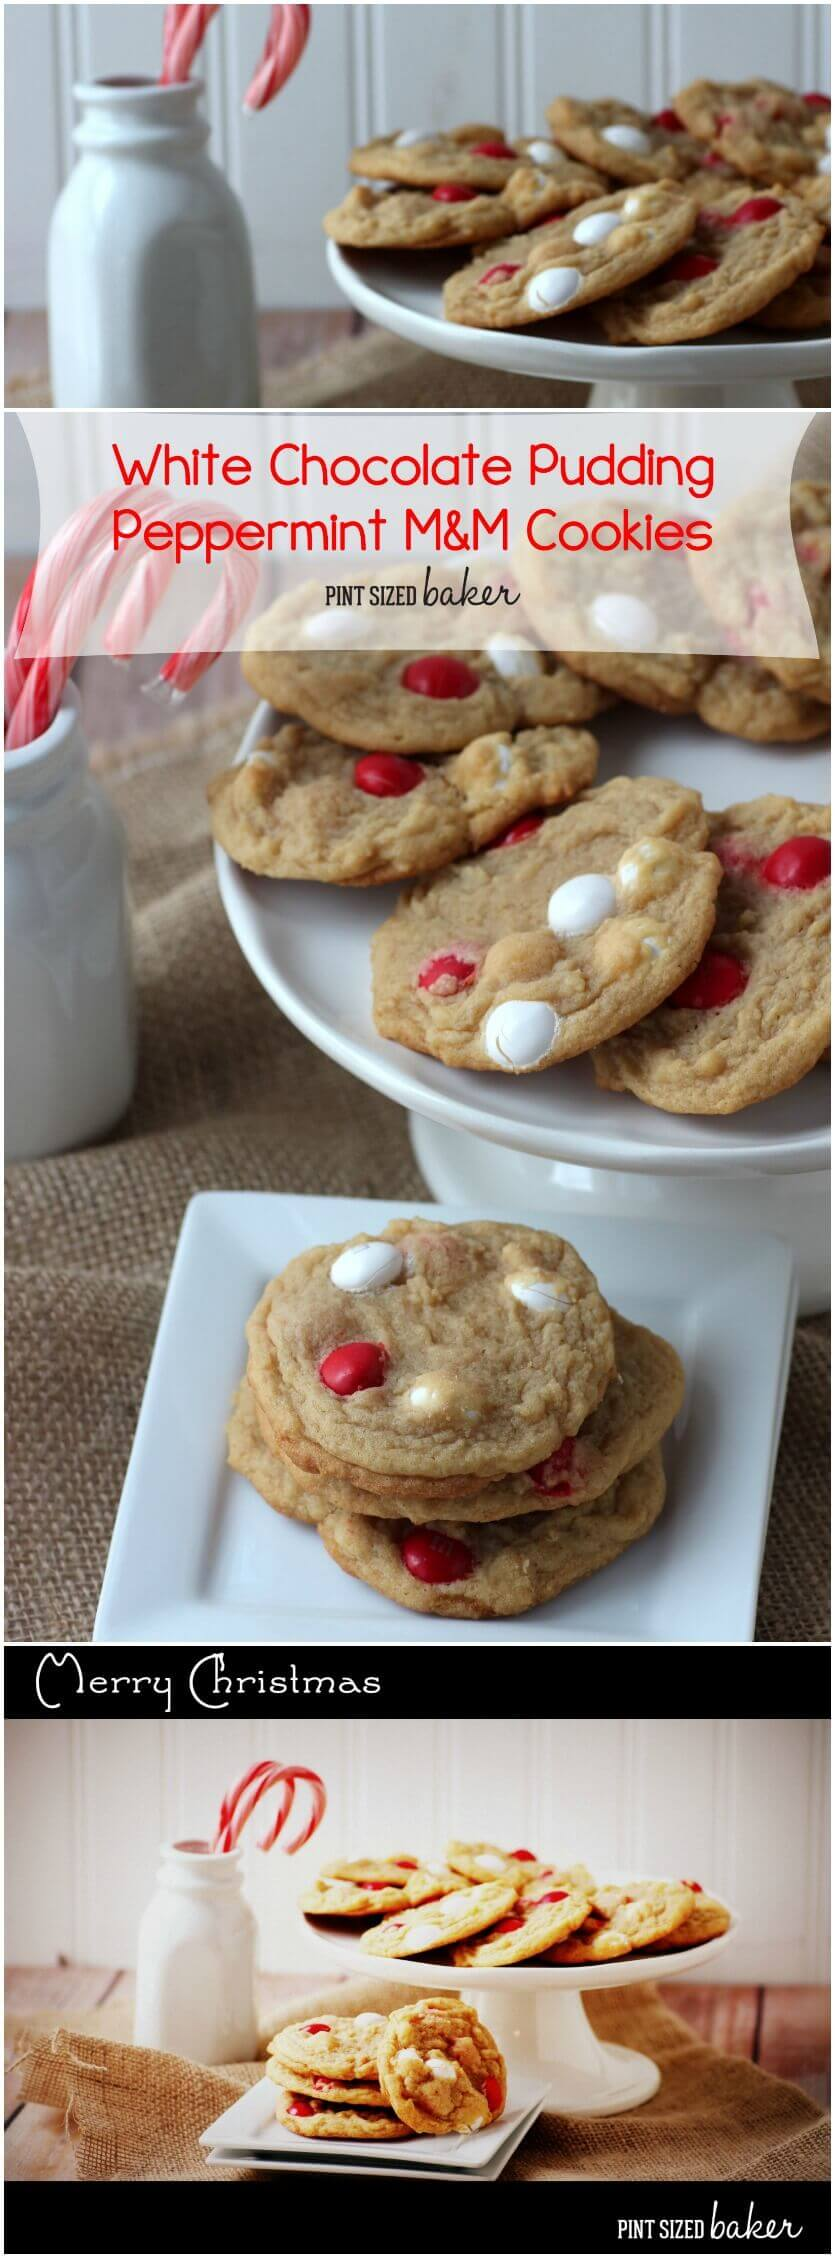 White Chocolate Pudding Peppermint Cookies that are sure to be a hit on your Christmas cookie plate this year.